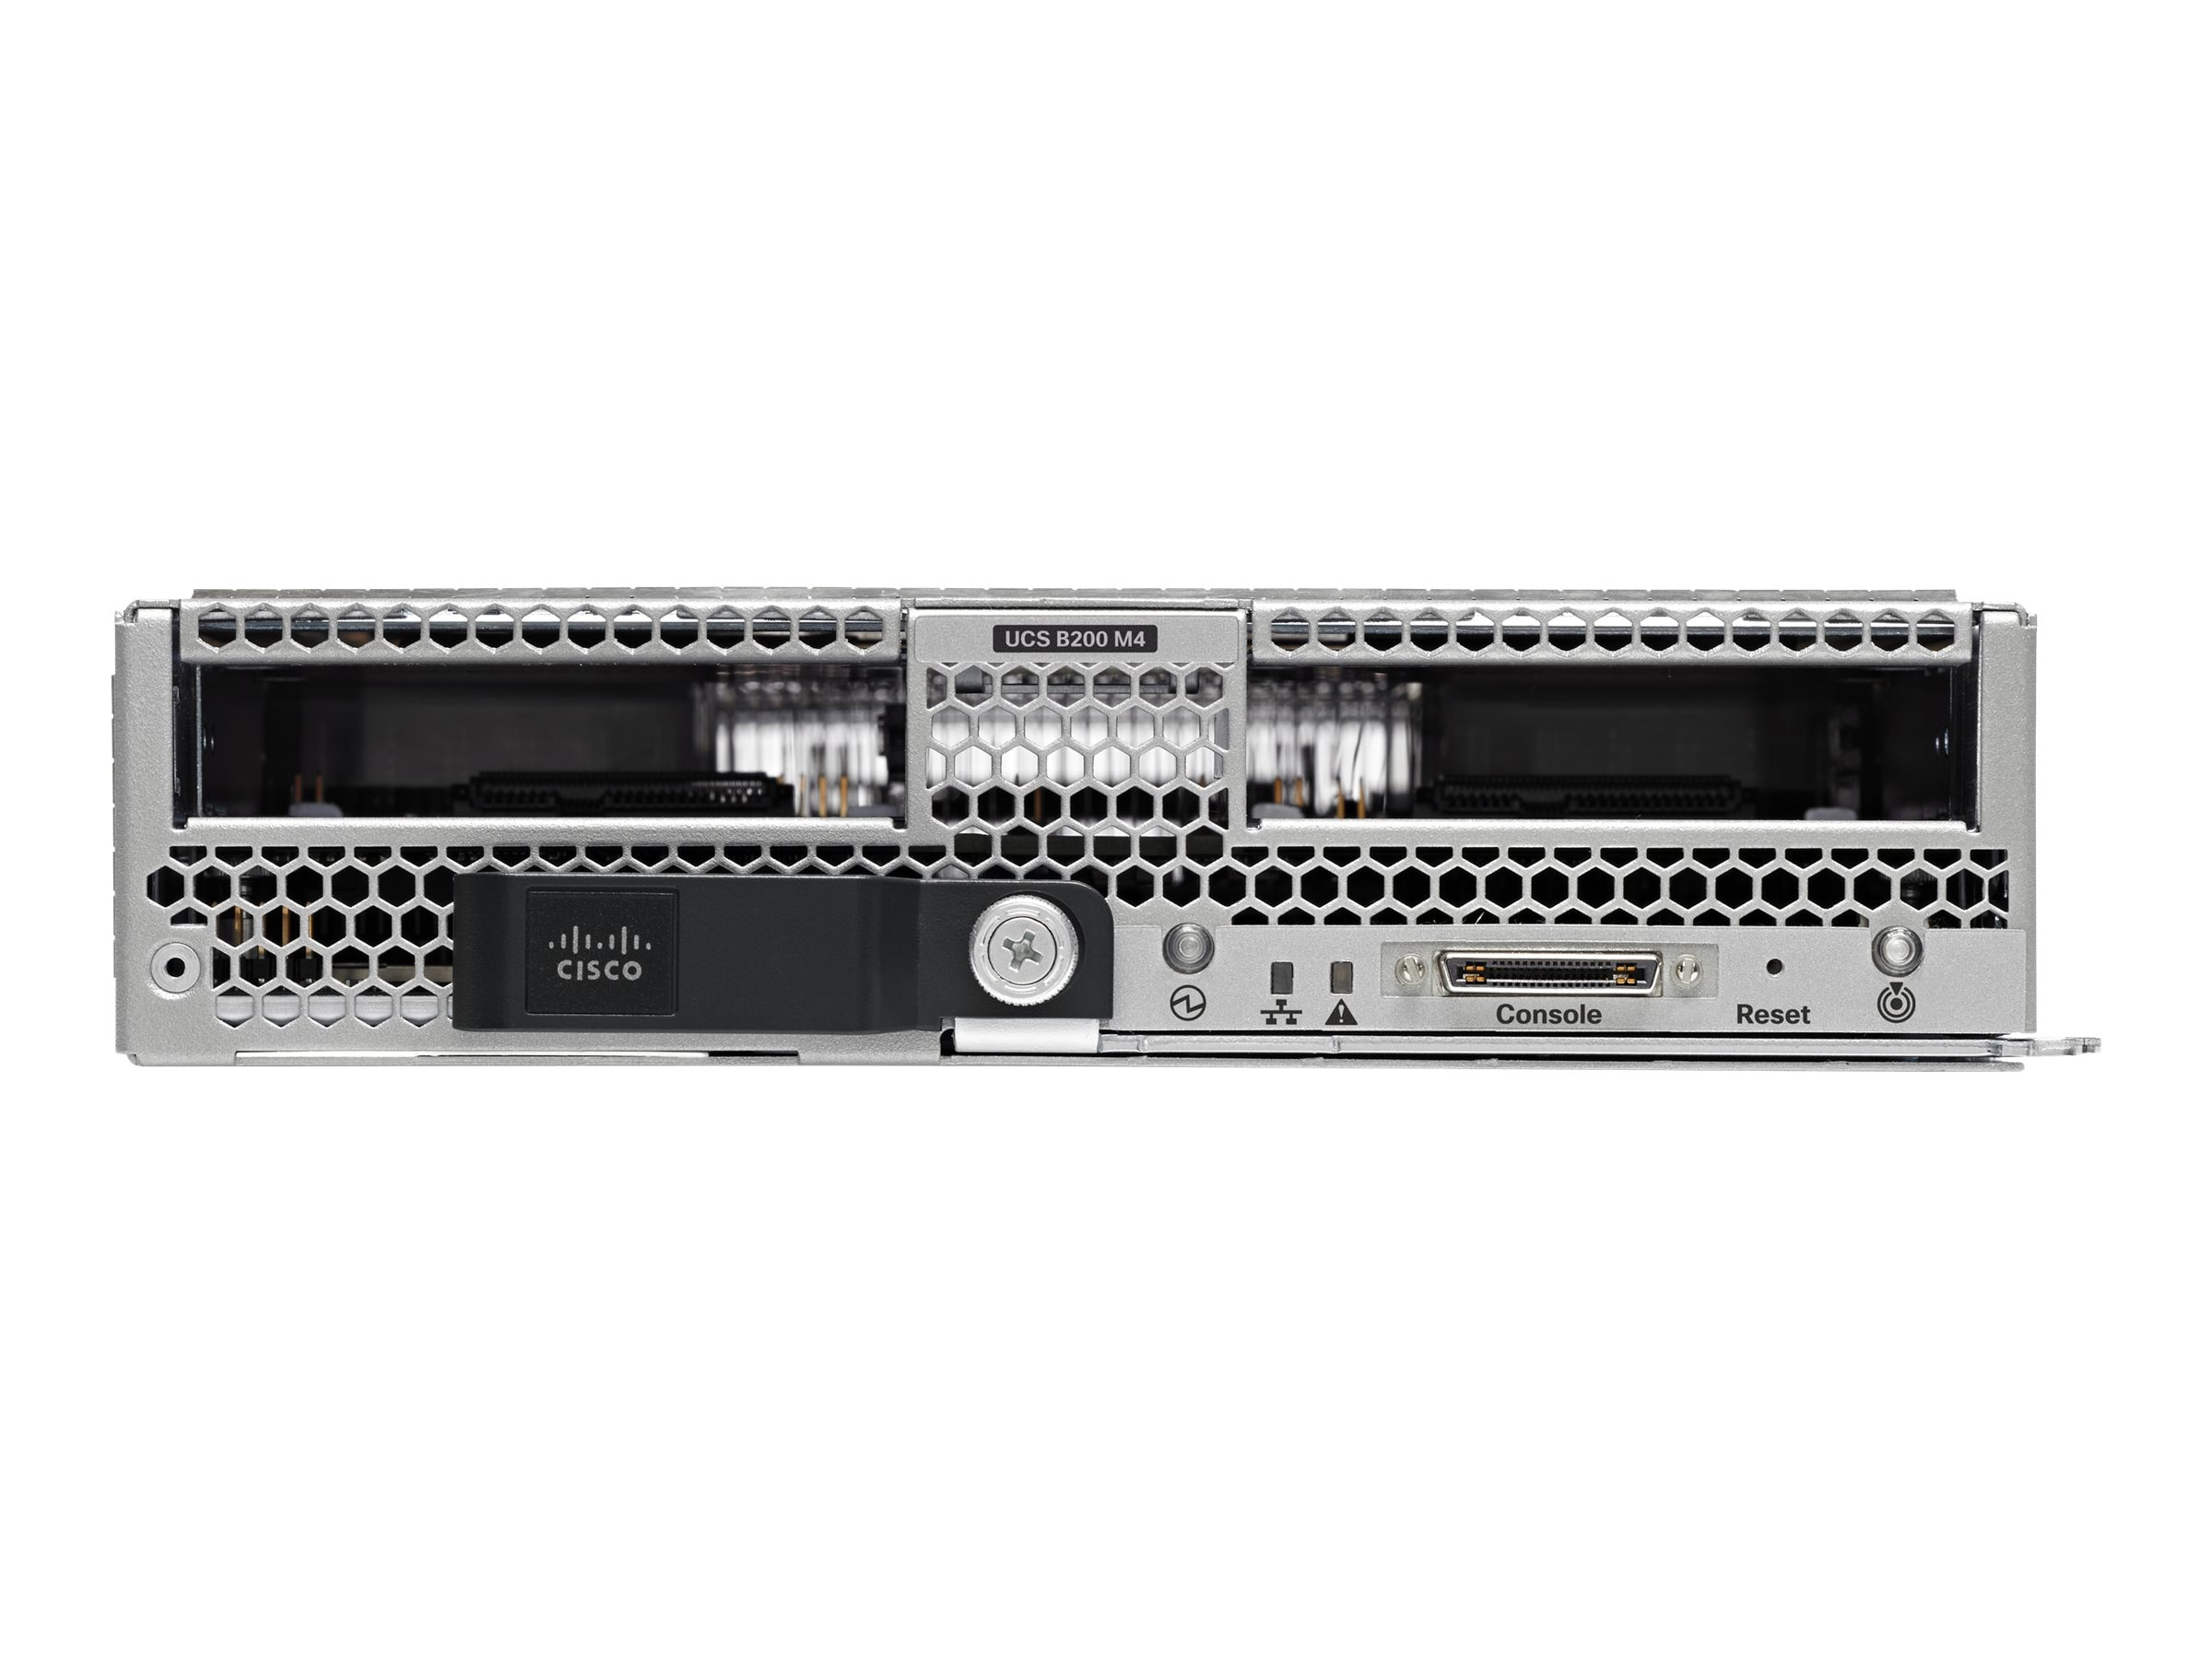 Cisco UCS-SP-B200M4-B-A2 Image 4